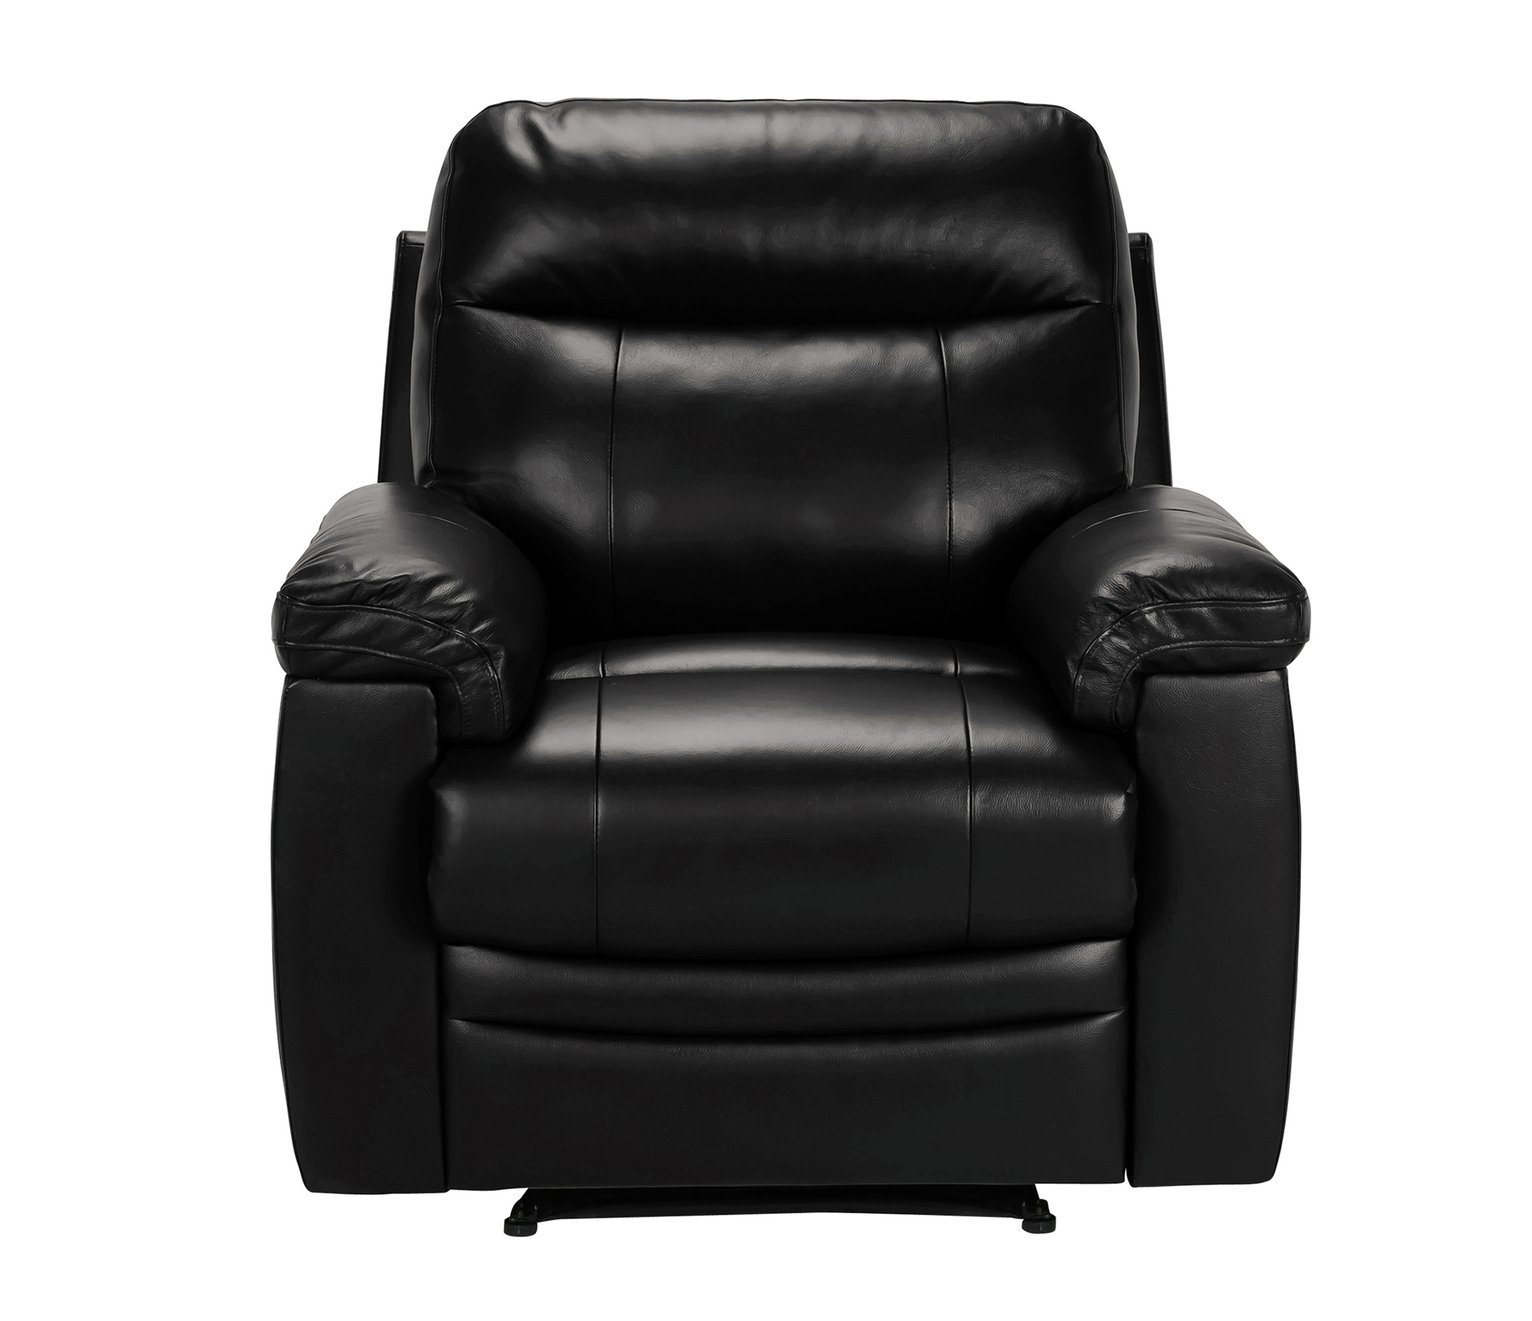 Leather Riser Recliner Chairs Riser Chairs Costing Less Than